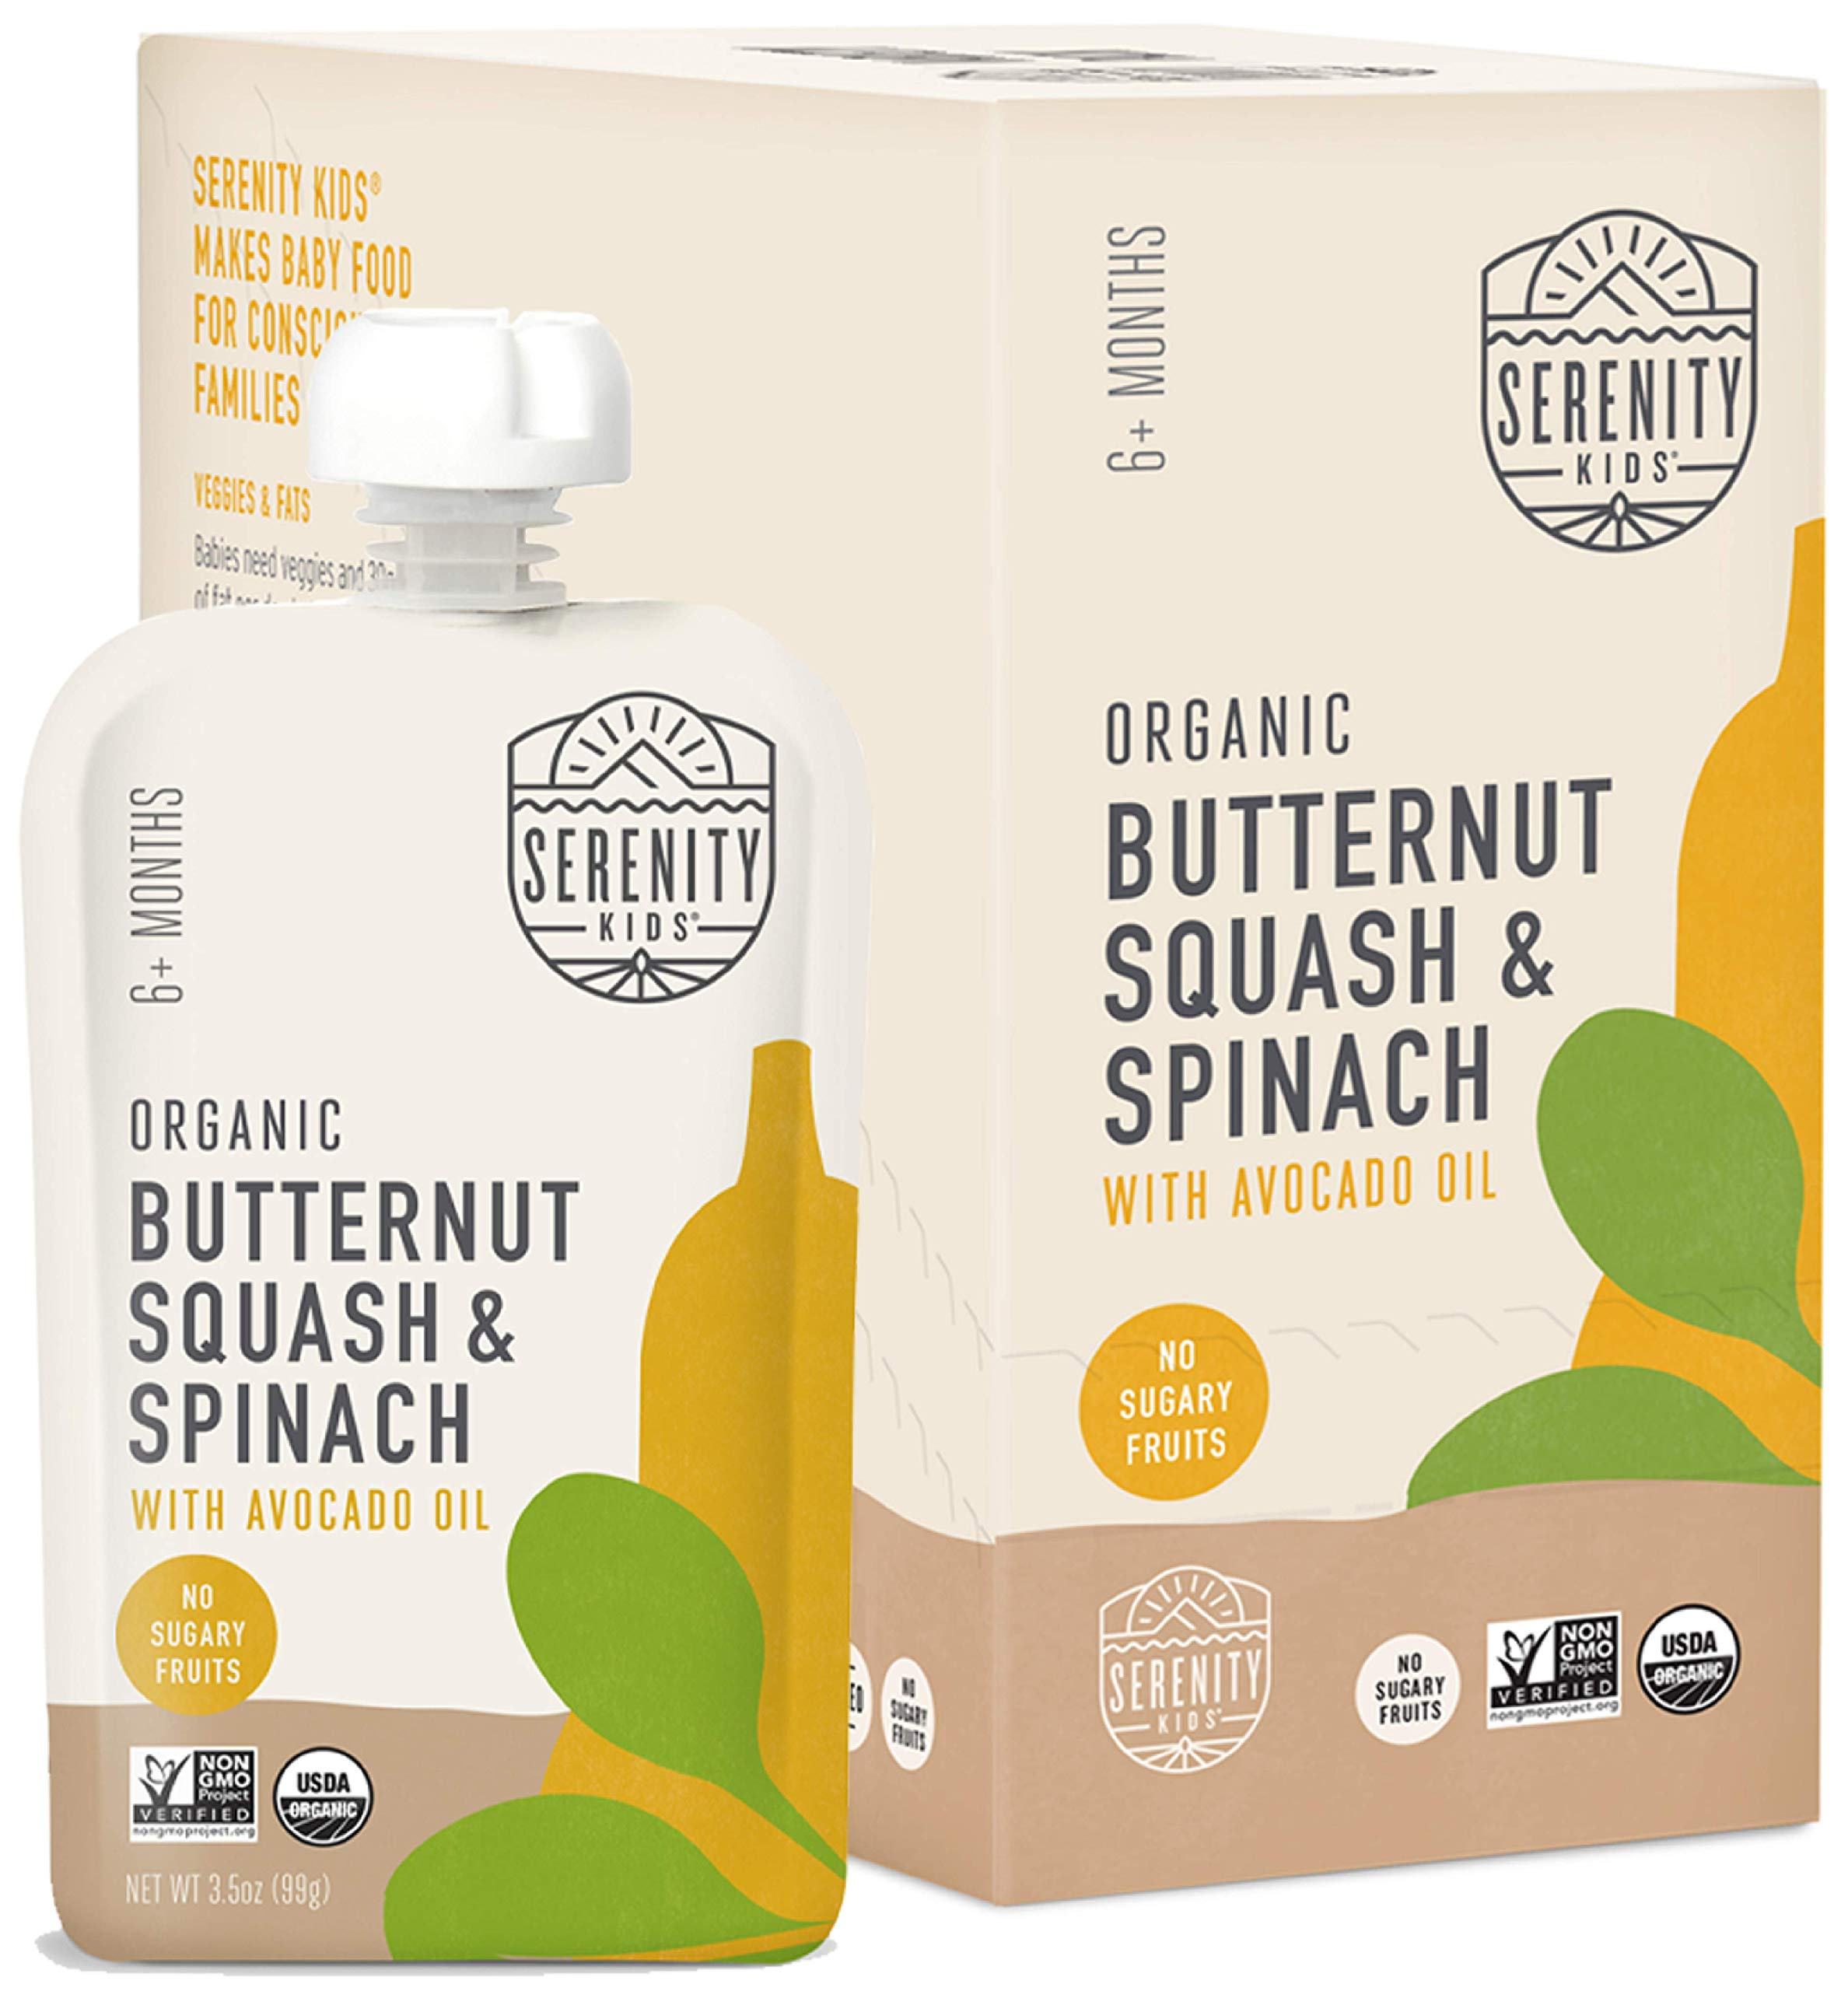 Serenity Kids Baby Food, Organic Butternut Squash and Spinach with Avocado Oil, For 6+ Months, 3.5 Ounce Pouch (6 Pack)